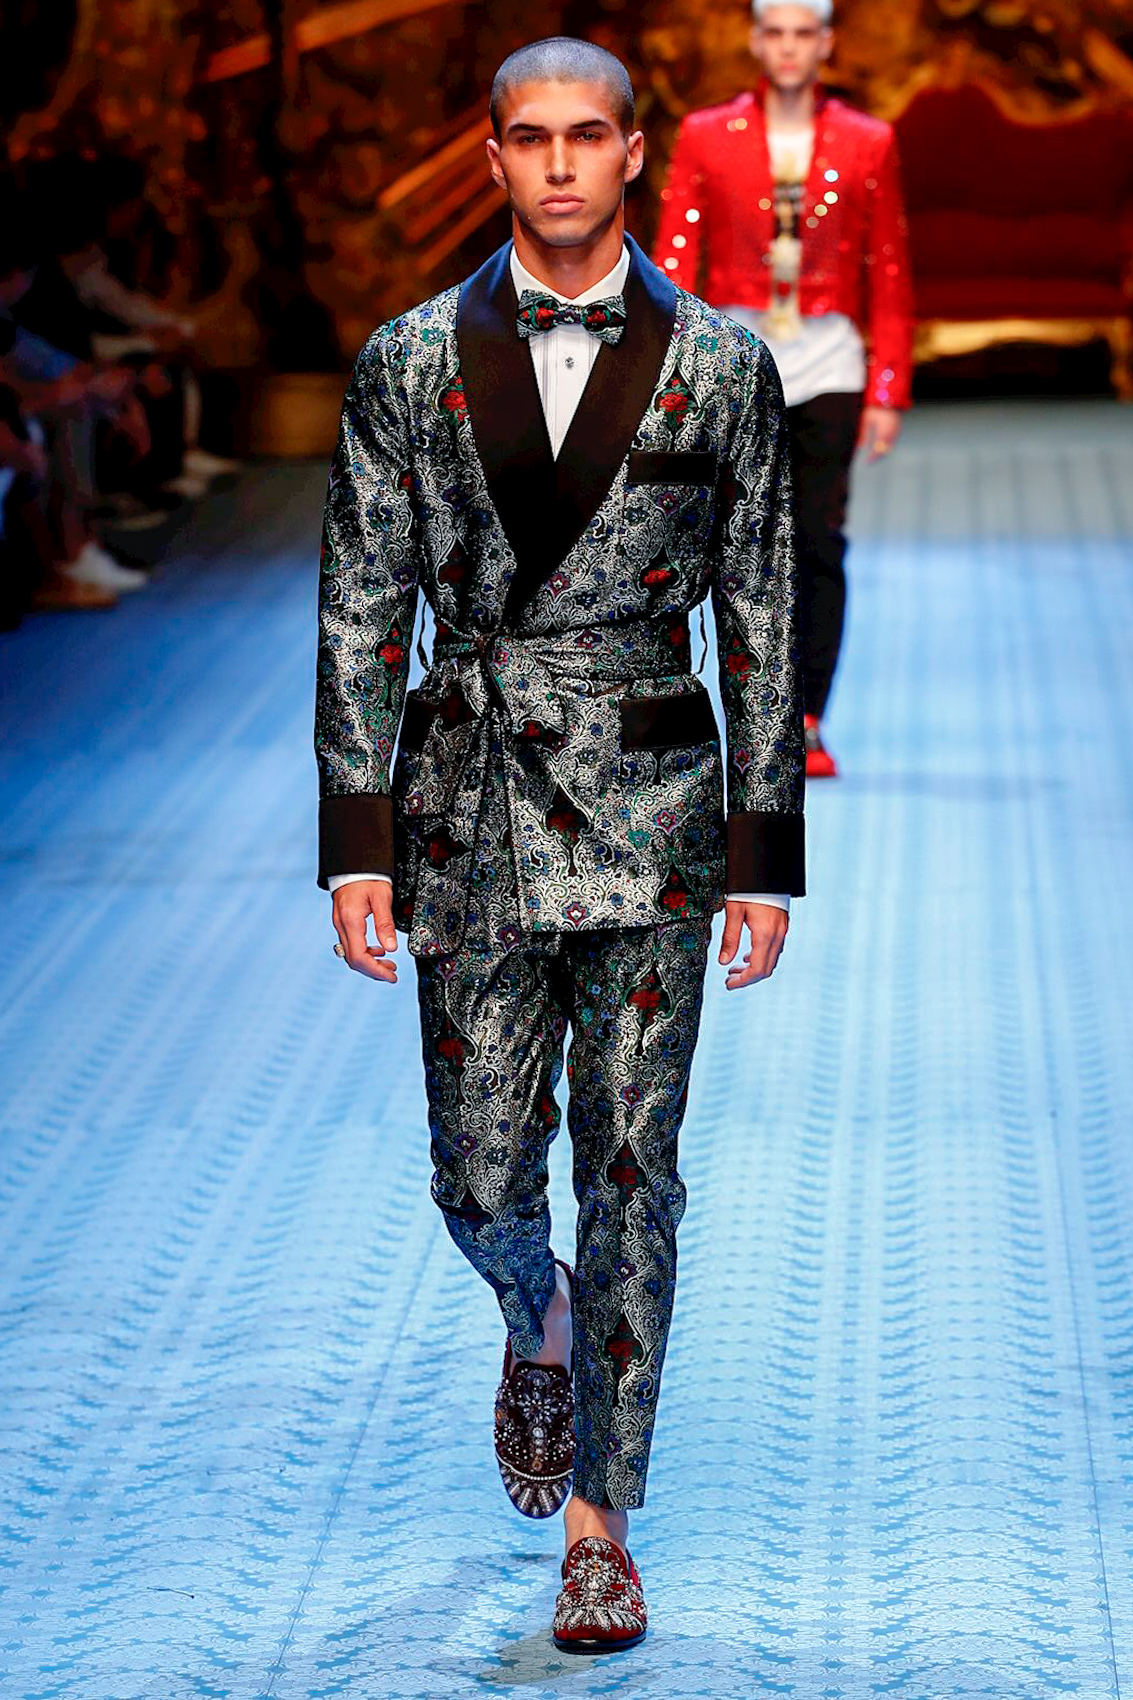 572b0f59 Dolce & Gabbana Fashion Show, Menswear Collection, Spring Summer 2019 in  Milan